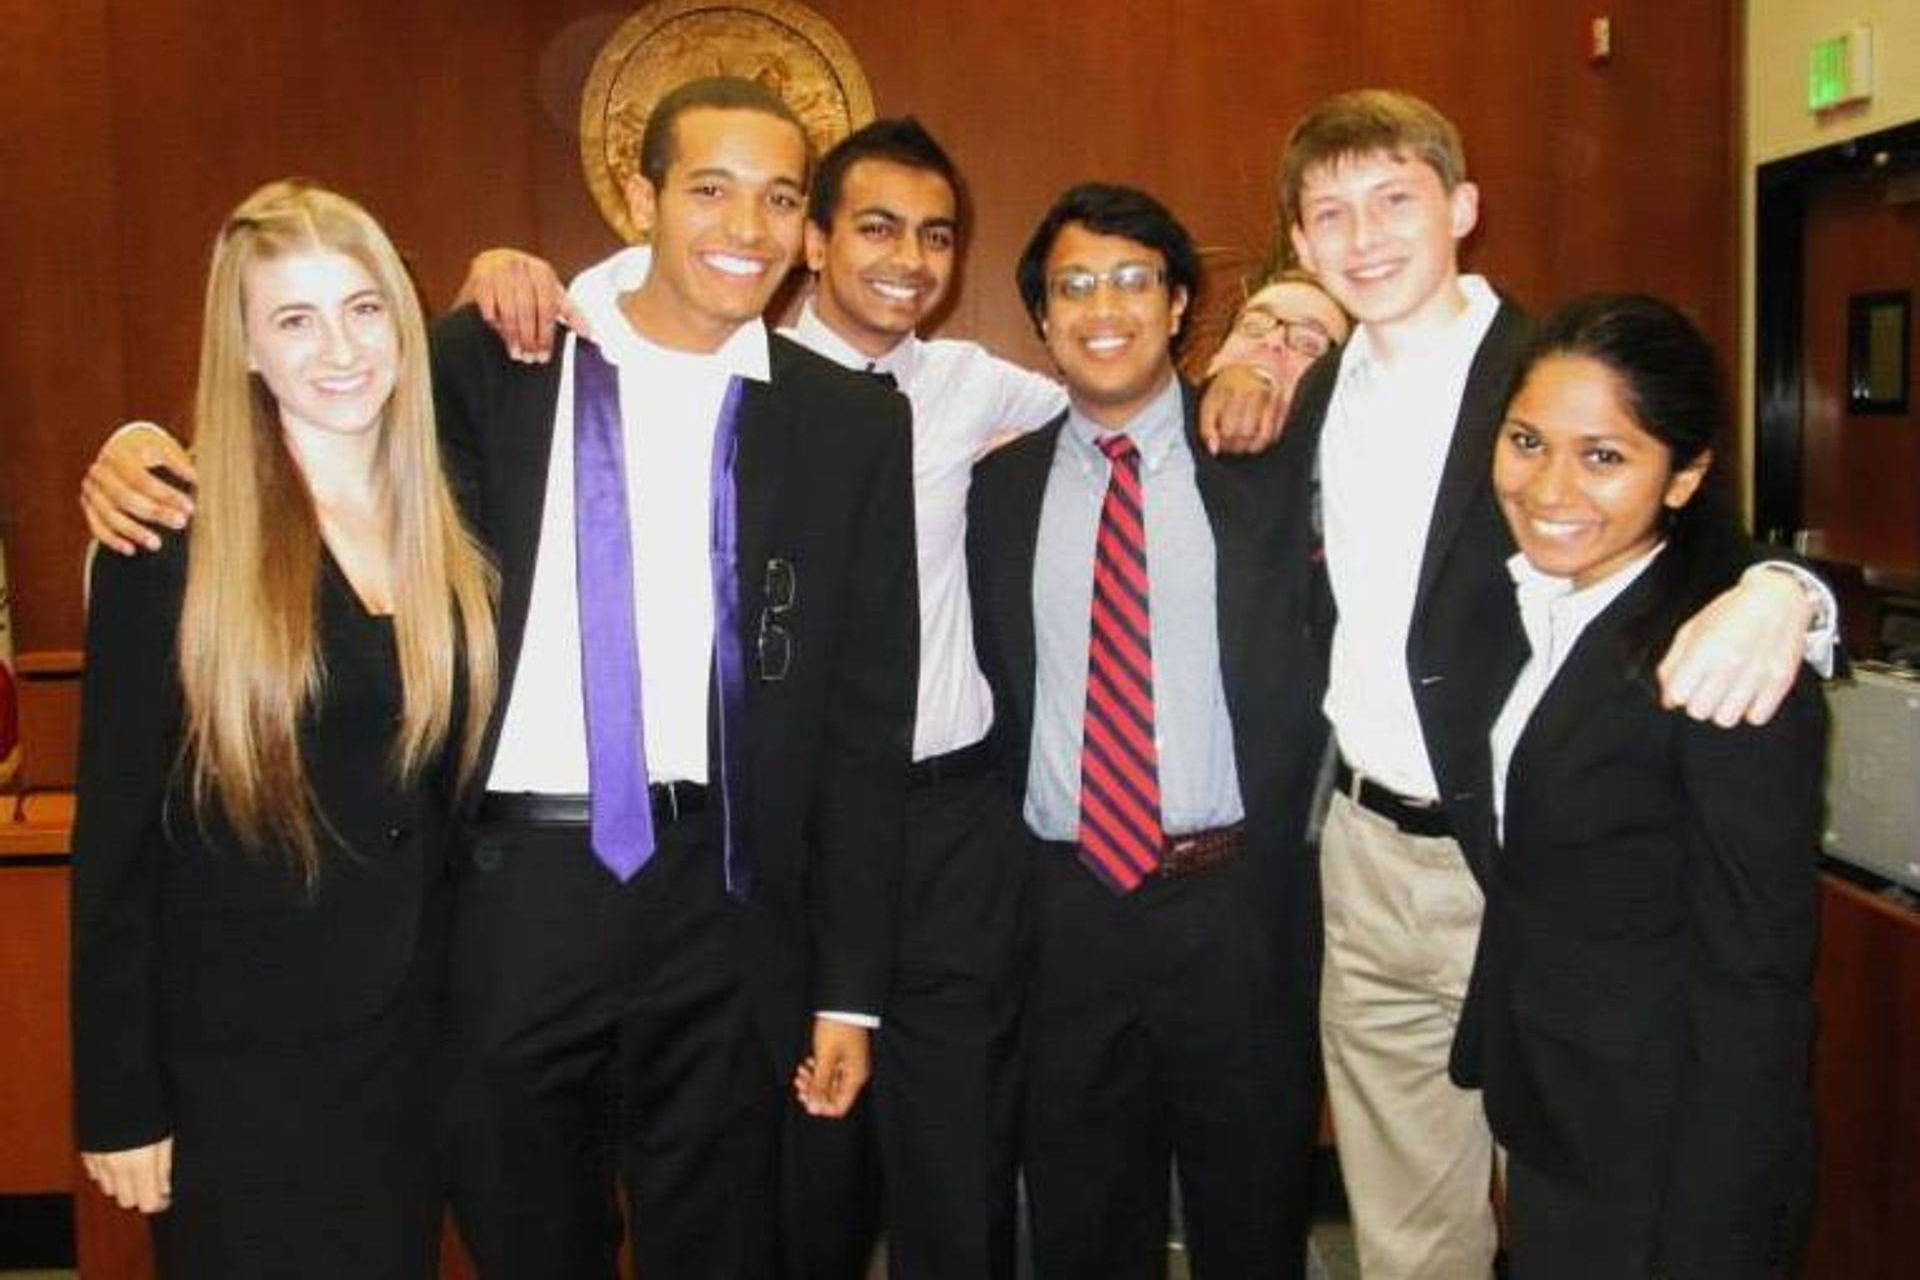 Beach Party Invitational (11/23 - 11/24) - Cal Mock Trial sent two teams to Irvine, California, to take part in one of the nation's most competitive fall invitationals. The teams faced opponents such as Furman University, New York University, Northwestern University, and Brown University. This tournament marked the debut of seven of CMT's eleven new members, and we couldn't have been more excited to welcome them to collegiate mock trial. Additionally, team member Brandon Thomas was recognized with an individual award for receiving a total of 29 ranks.